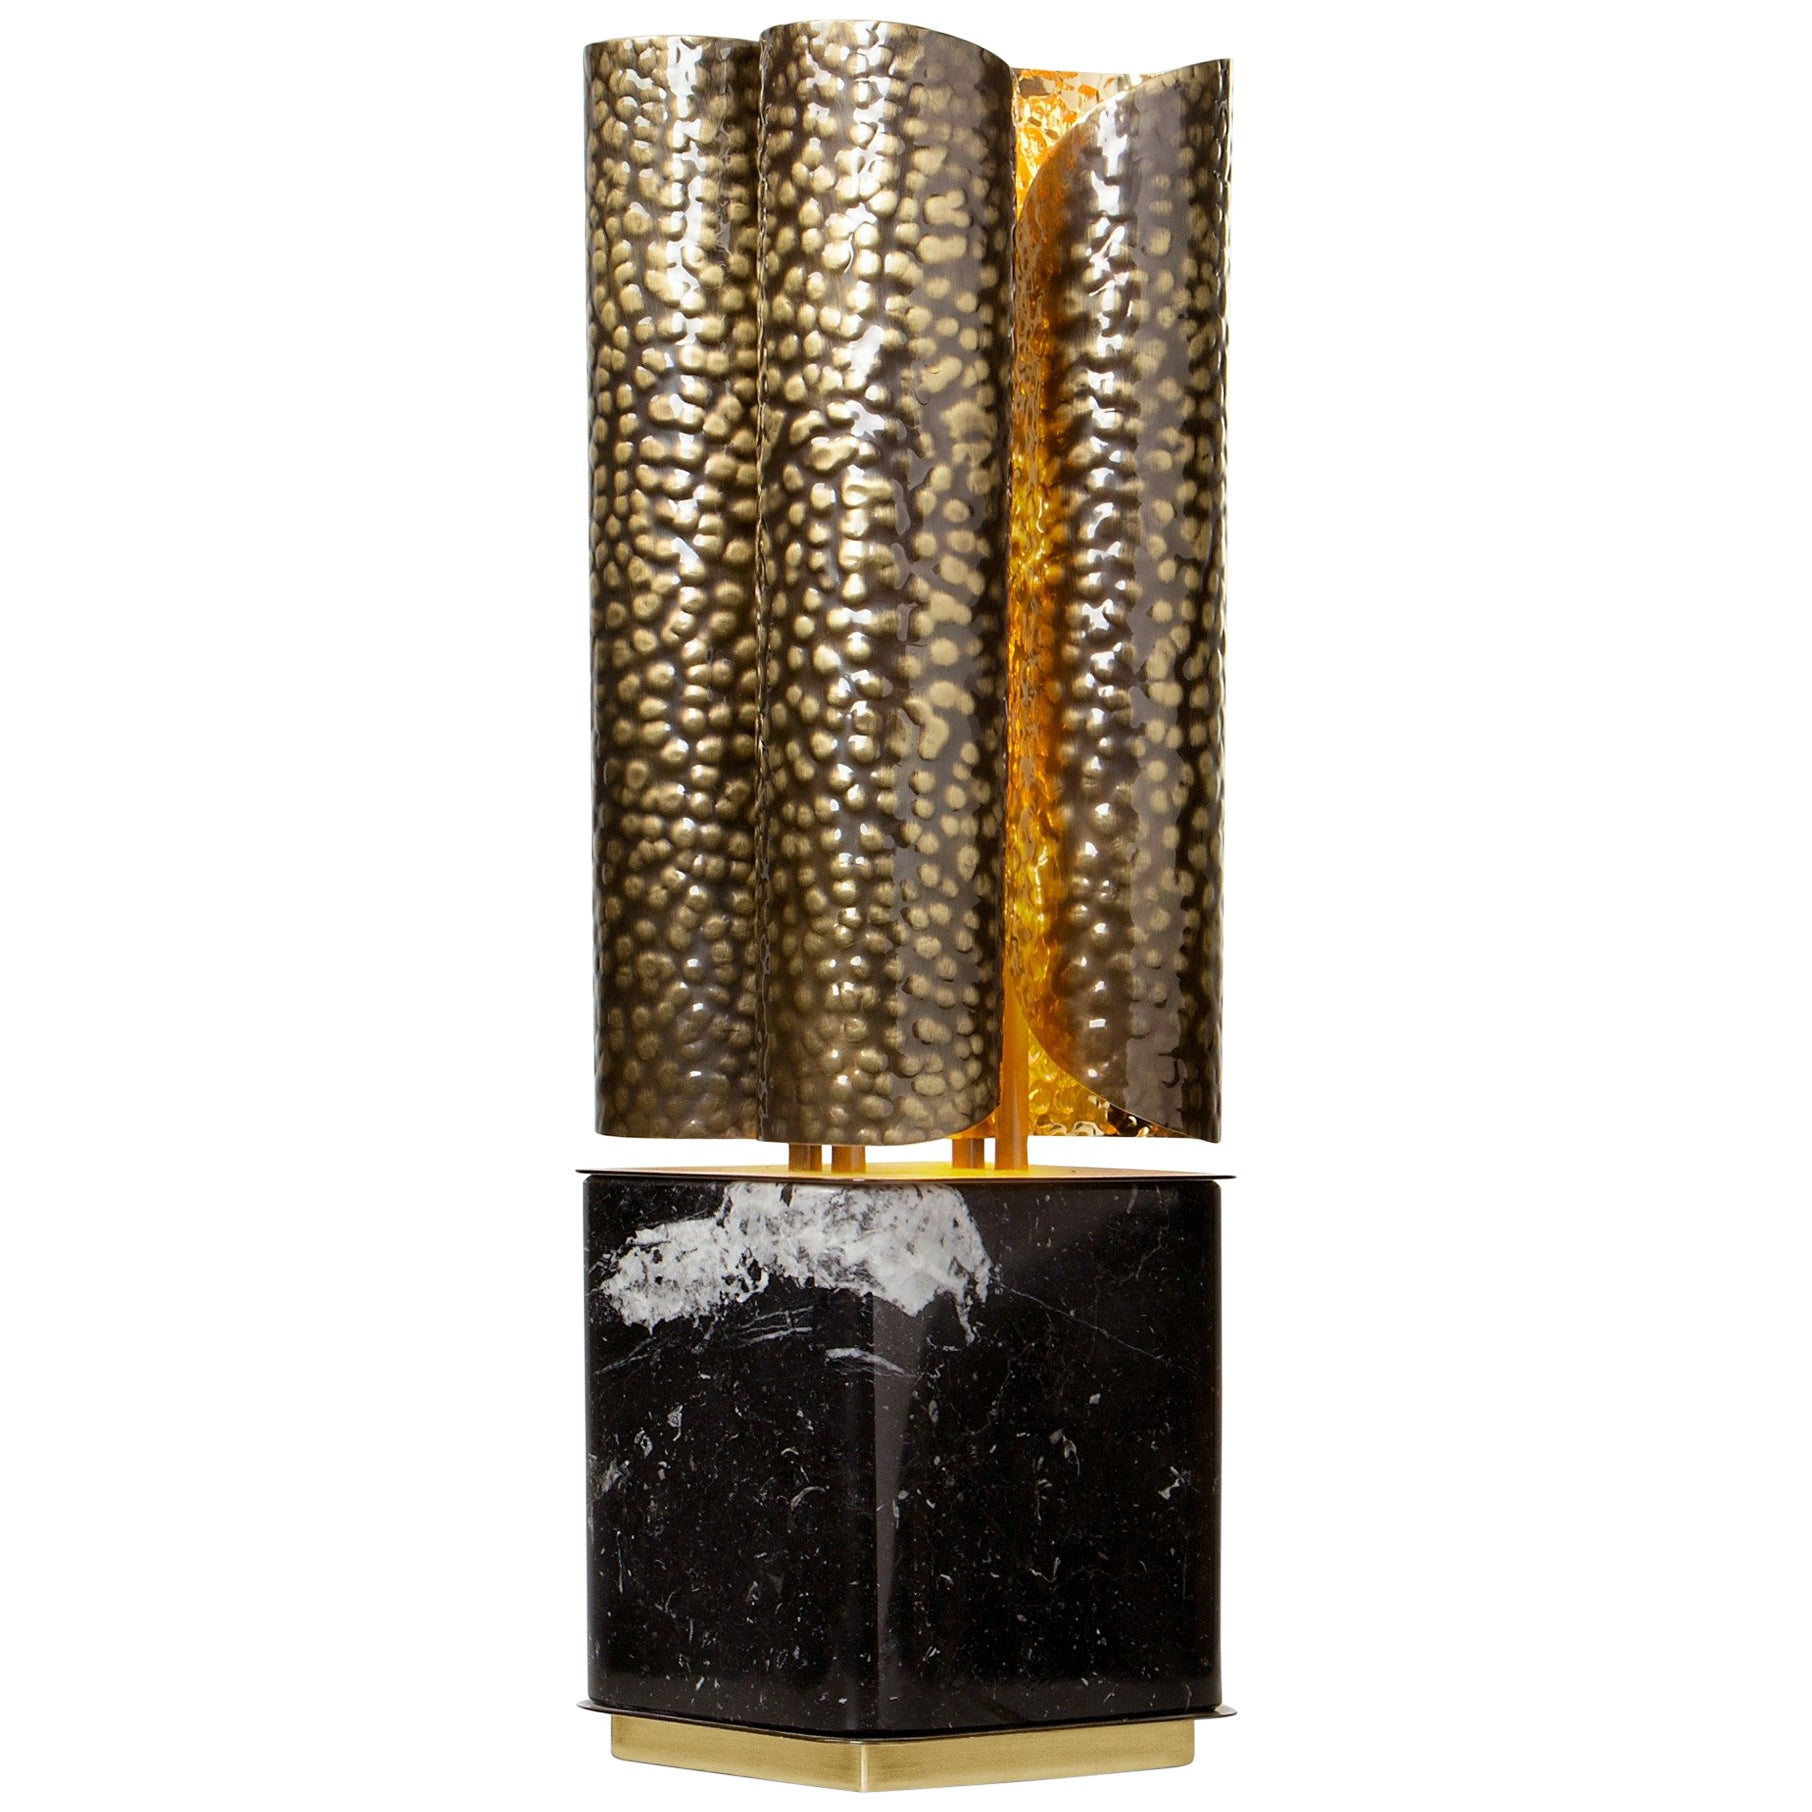 Vellum Table Lamp in Hammered Aged Brass with Marble Base